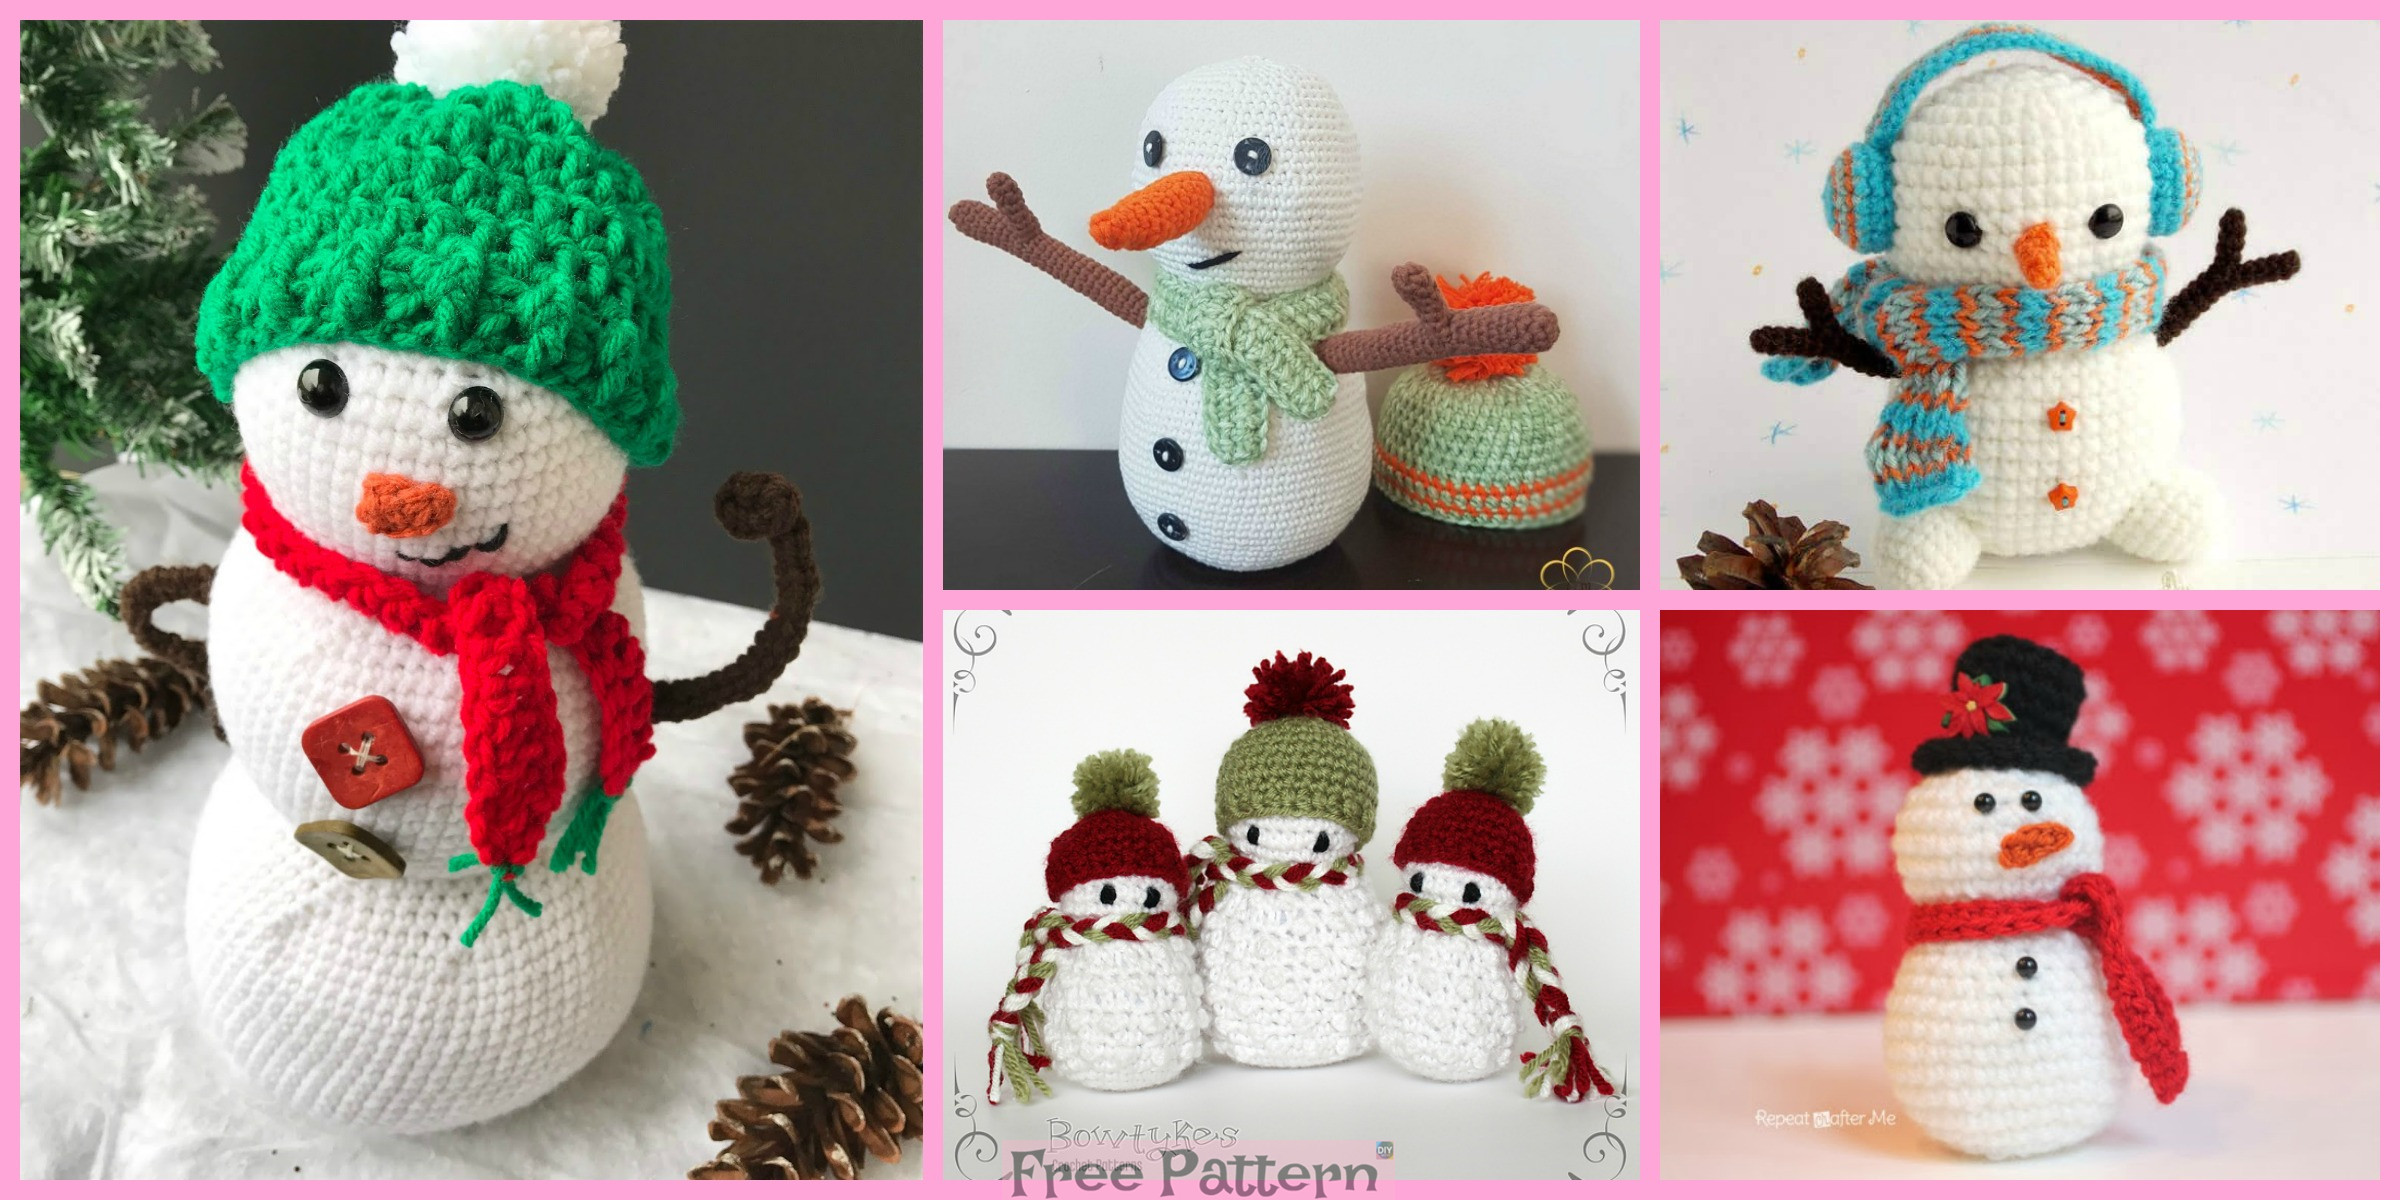 8 Crochet Snowman Amigurumi Free Patterns